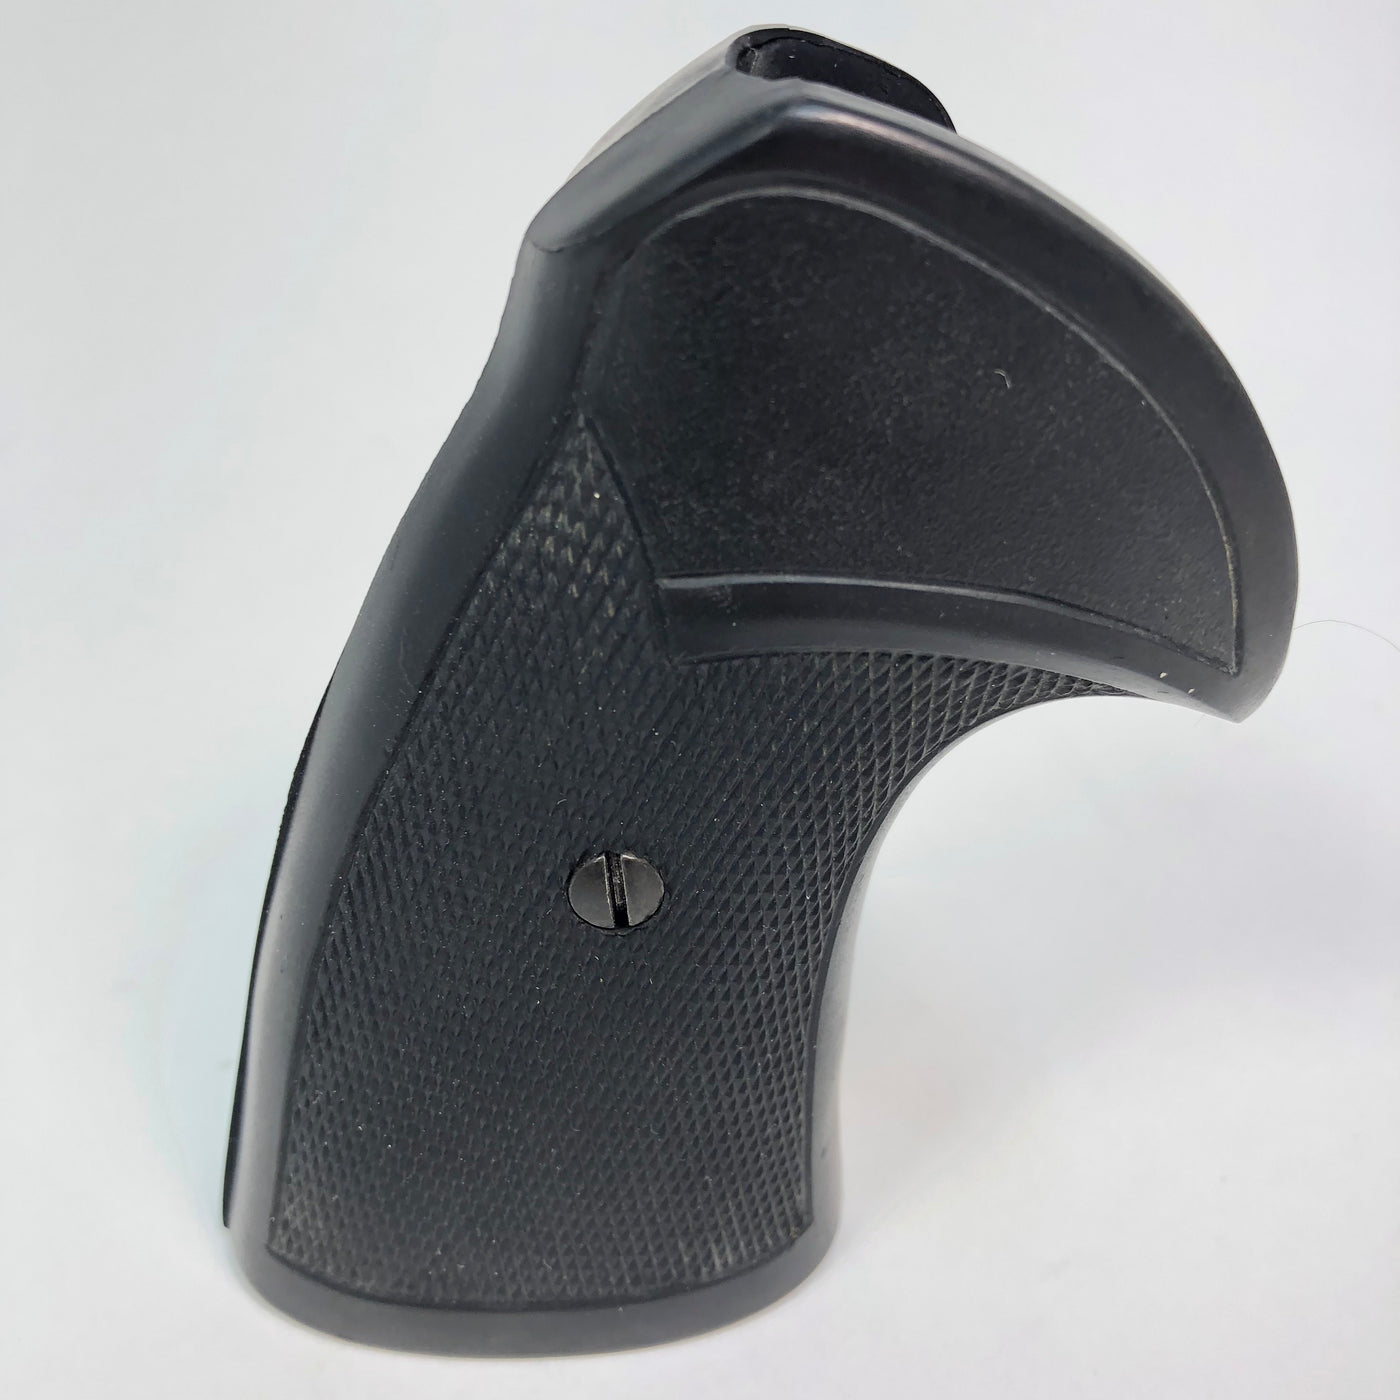 Pachmayr Presentation Grips Colt D Frame Small Handle Grip